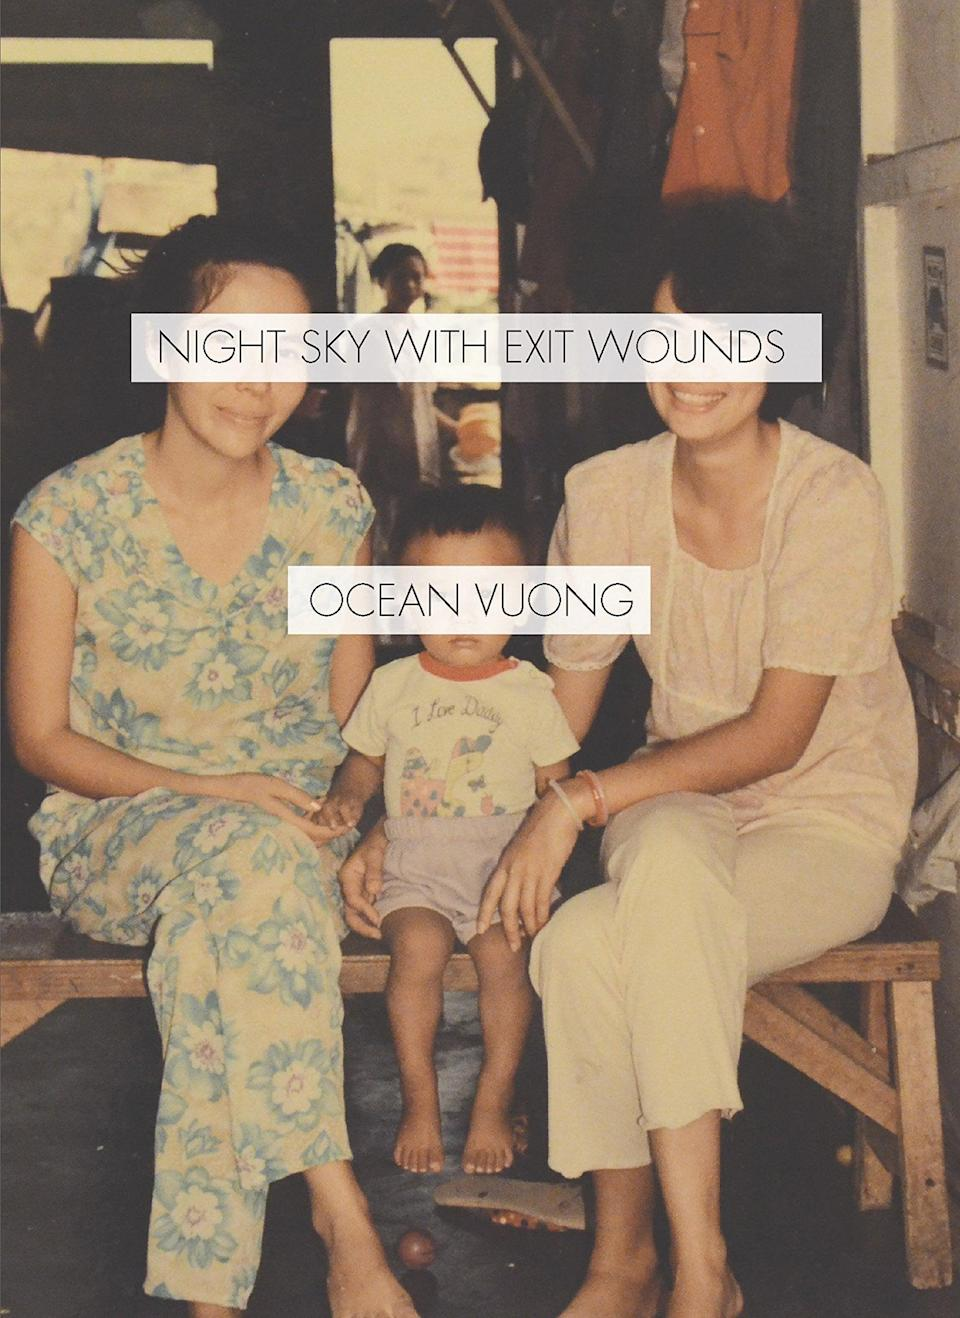 """<h2>Night Sky With Exit Wounds</h2><br>Ocean Vuong is a Vietnamese poet and delves into some dark themes with this book. However, his powerful display of emotions made me want to read the whole thing in one sitting. <br><br><em>Shop <strong><a href=""""https://amzn.to/3janIWU"""" rel=""""nofollow noopener"""" target=""""_blank"""" data-ylk=""""slk:Ocean Vuong"""" class=""""link rapid-noclick-resp"""">Ocean Vuong</a></strong></em><br><br><strong>Copper Canyon Press</strong> Night Sky with Exit Wounds, $, available at <a href=""""https://amzn.to/35w9s6f"""" rel=""""nofollow noopener"""" target=""""_blank"""" data-ylk=""""slk:Amazon"""" class=""""link rapid-noclick-resp"""">Amazon</a>"""